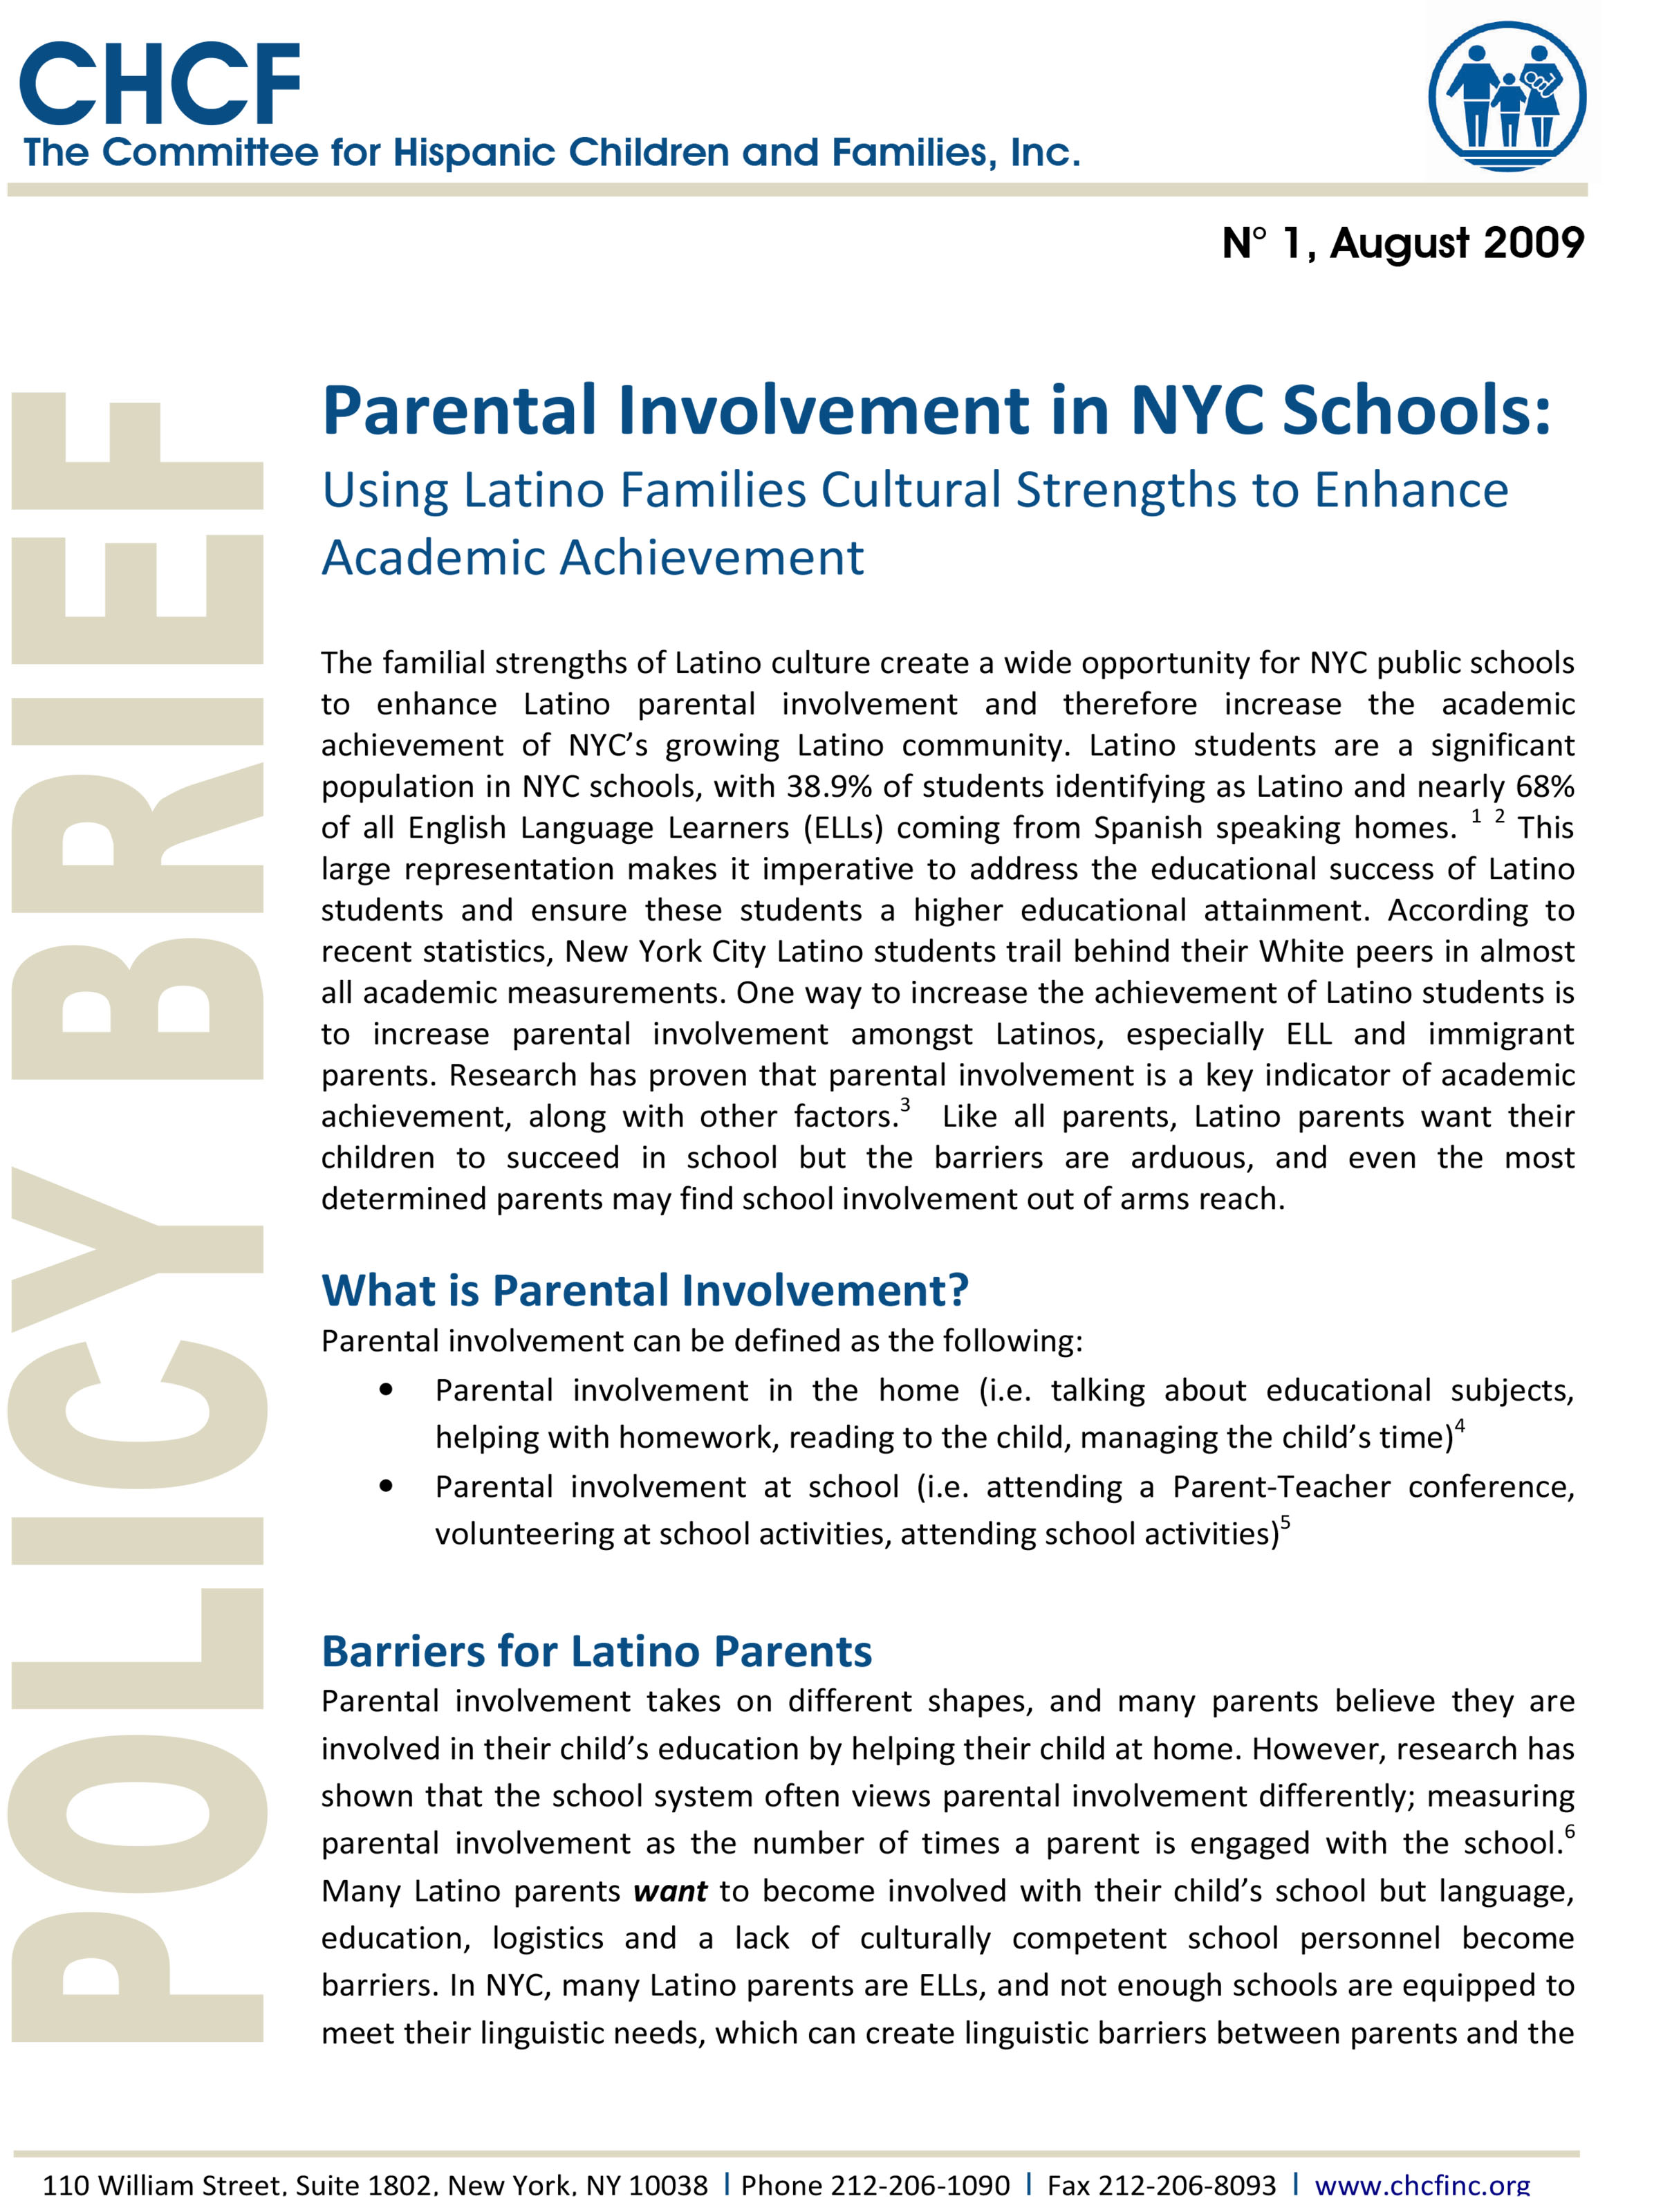 thesis on parental involvement in education Parent involvement is so important that the no child left behind act (national pta, 2006) is a federal policy that puts a mandate on parental involvement in education and family-school relations across primary school levels.